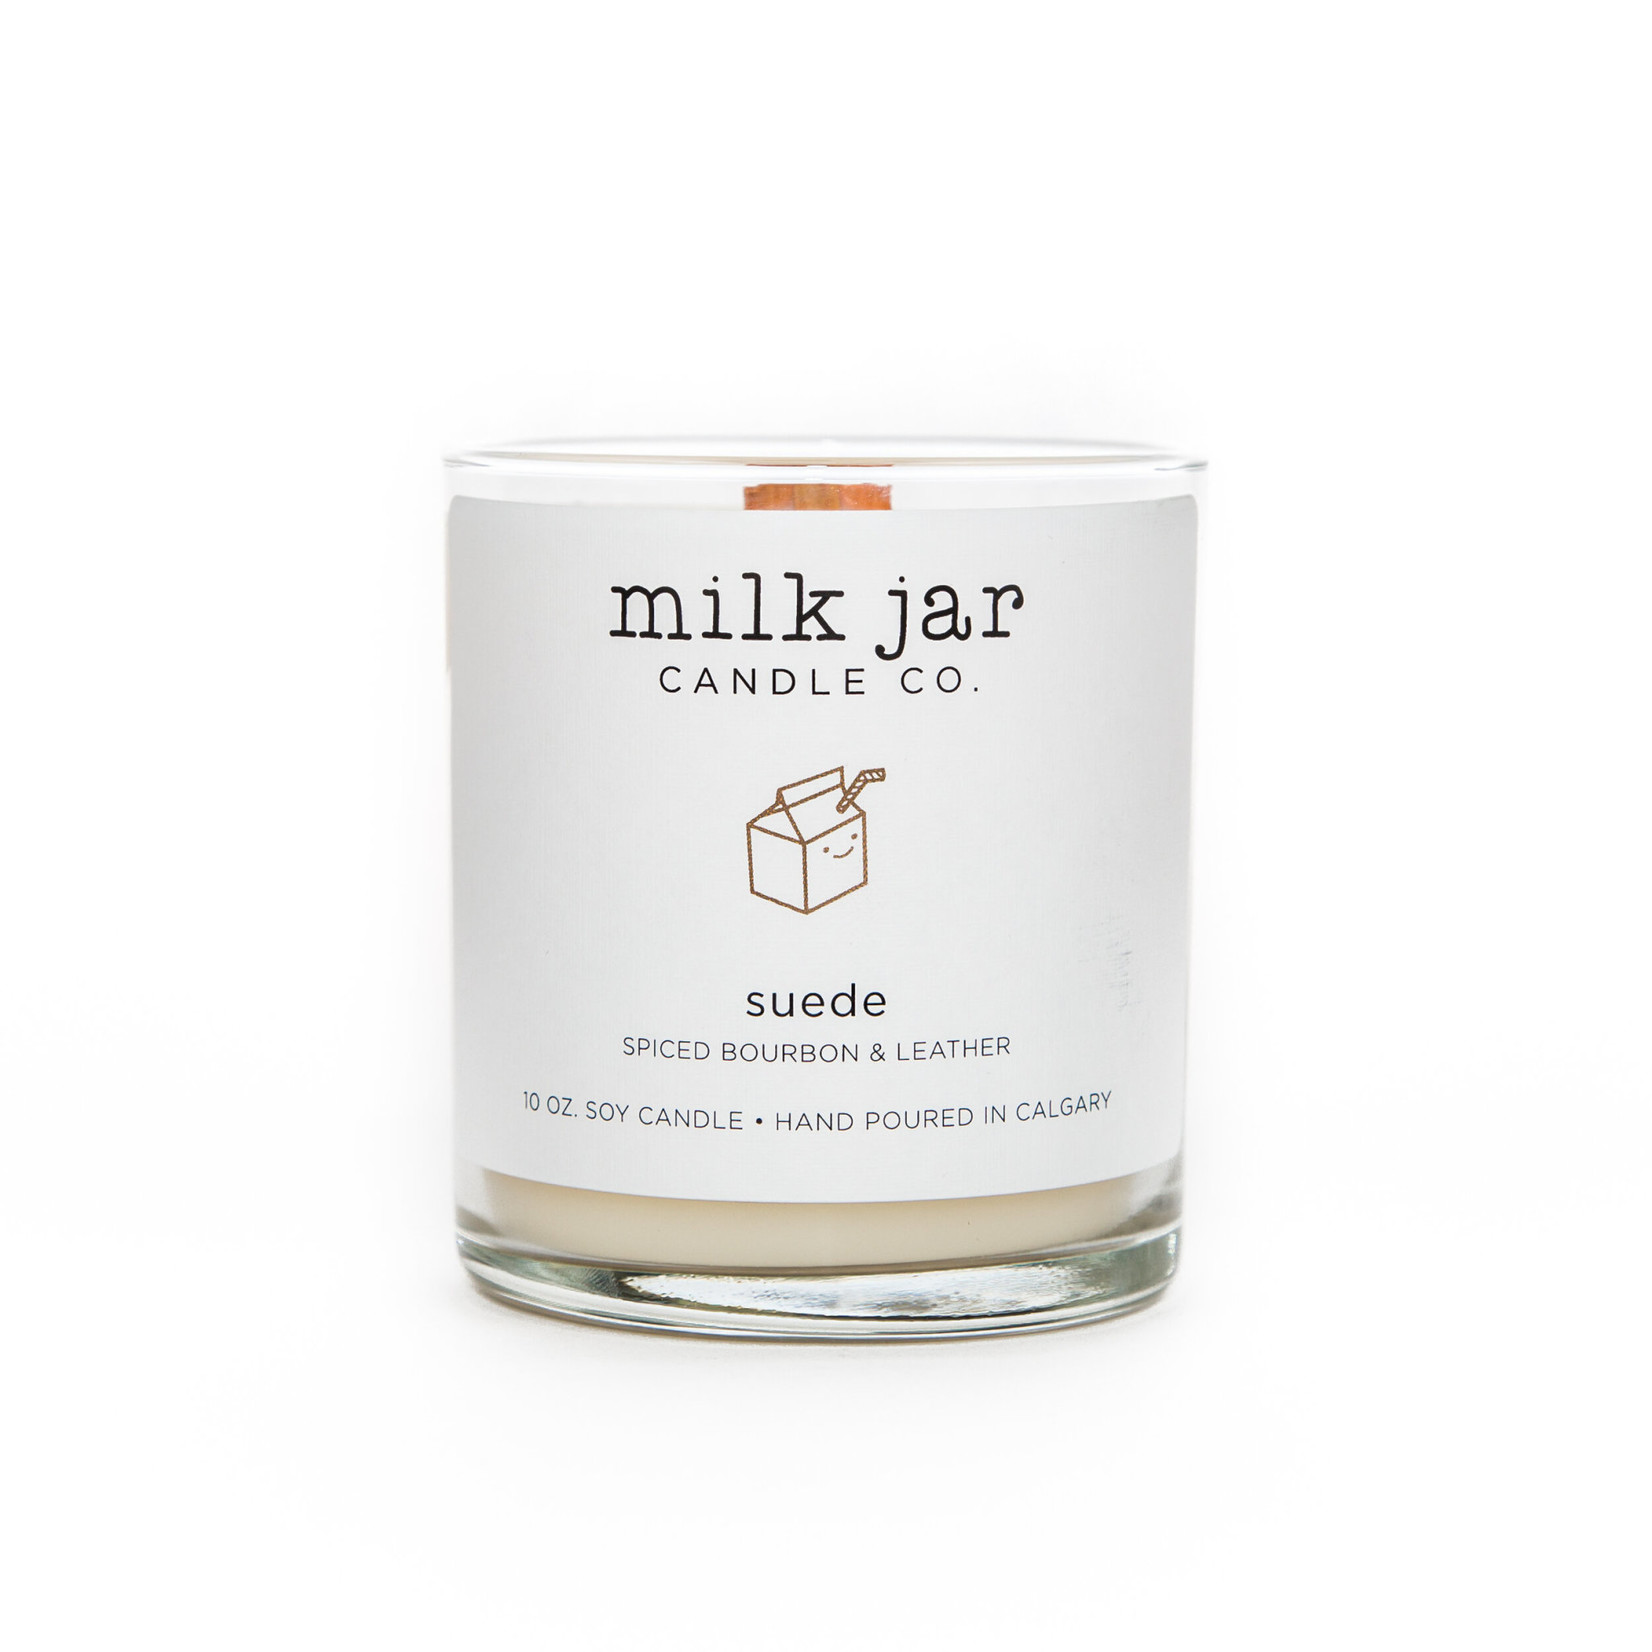 MILK JAR CANDLE CO. SUEDE CANDLE